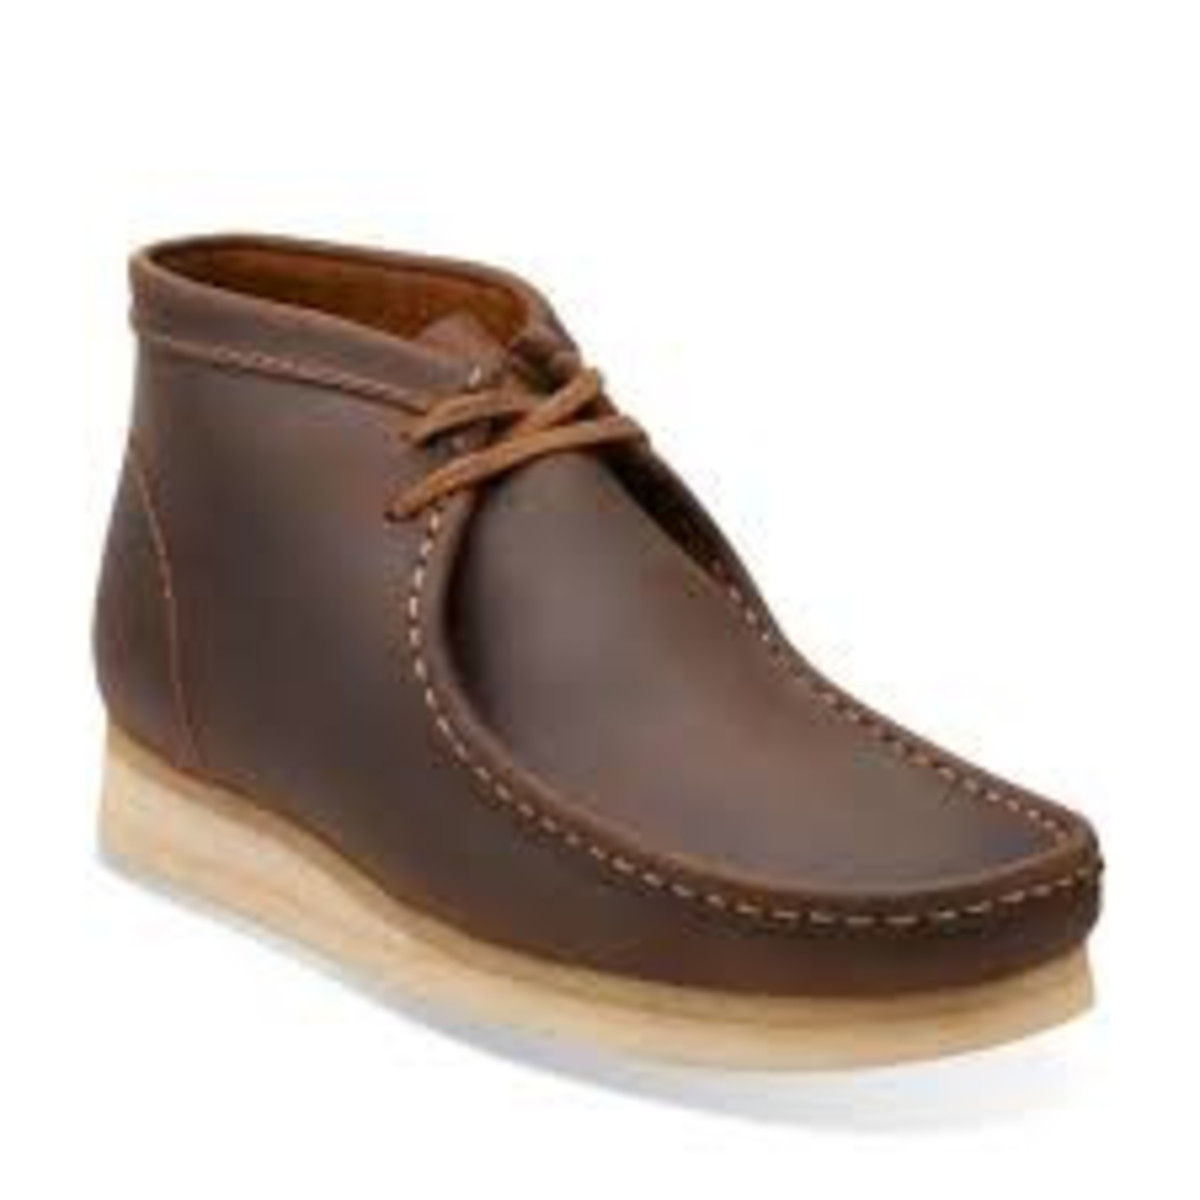 Clarks Mens Kicker Shoes